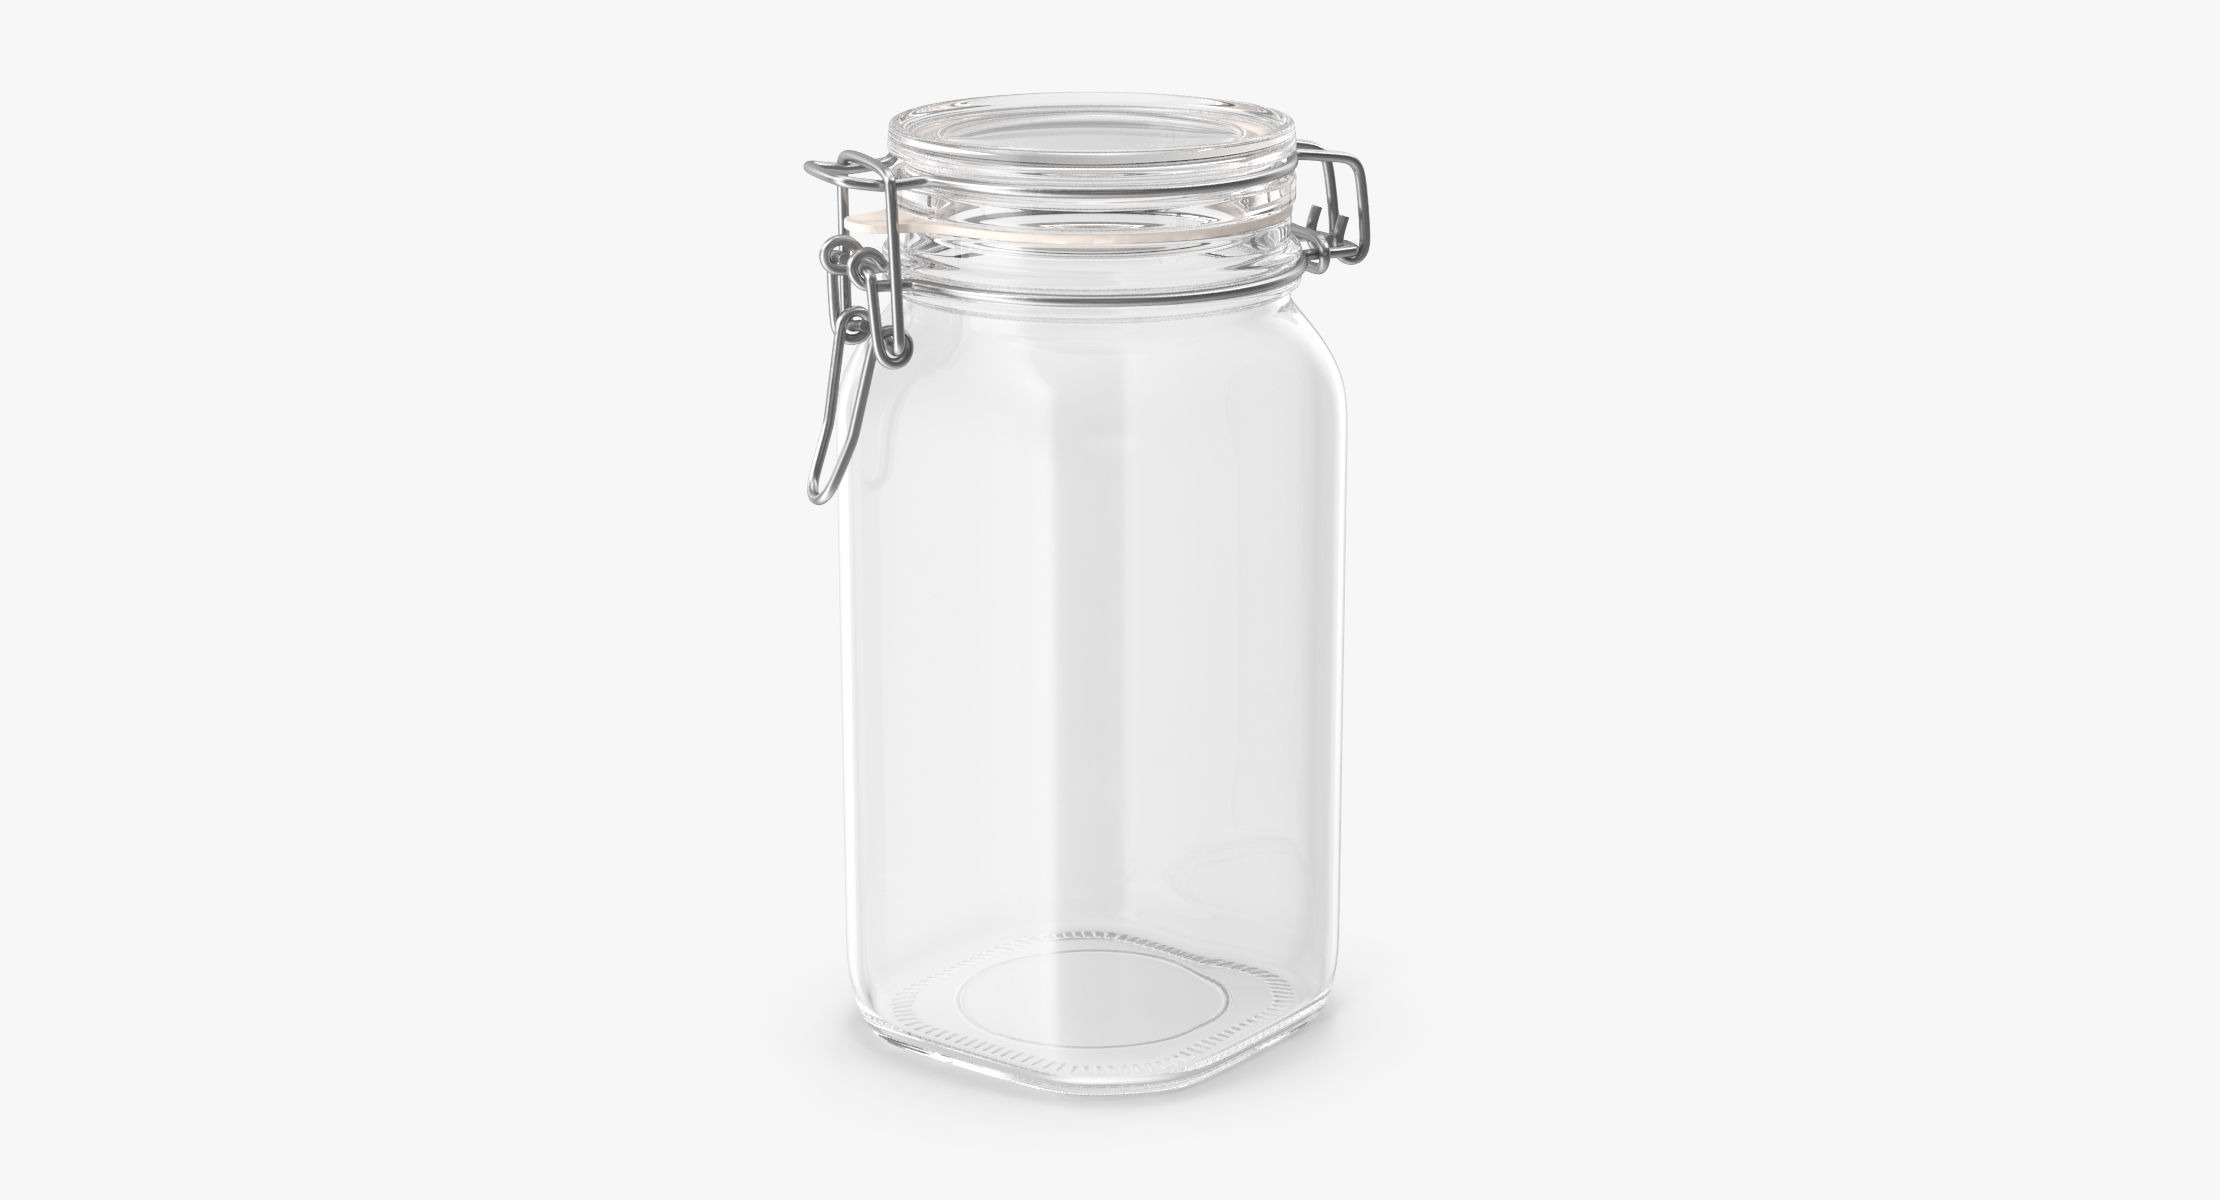 Hinged Glass Kitchen Jars 01 - reel 1